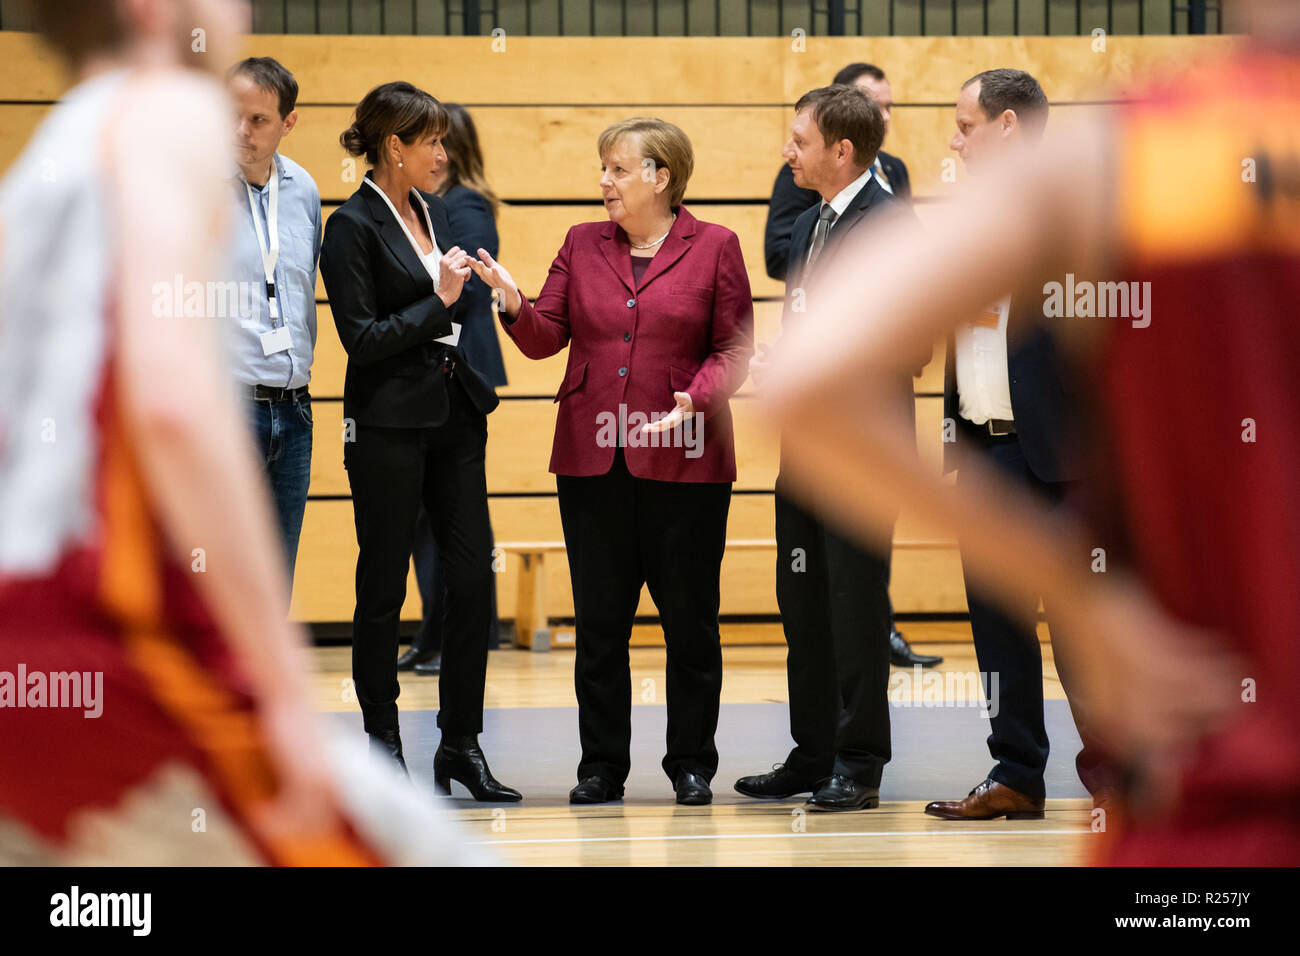 Chemnitz, Germany. 16th Nov, 2018. German Chancellor Angela Merkel (C) visits the basketball club Niners Chemnitz in Chemnitz, eastern Germany, on Nov. 16, 2018. Angela Merkel on Friday clarified her refugee policy during her visit to Chemnitz, a place regarded as the center of several severe xenophobic protests months ago. Credit: Kevin Voigt/Xinhua/Alamy Live News - Stock Image